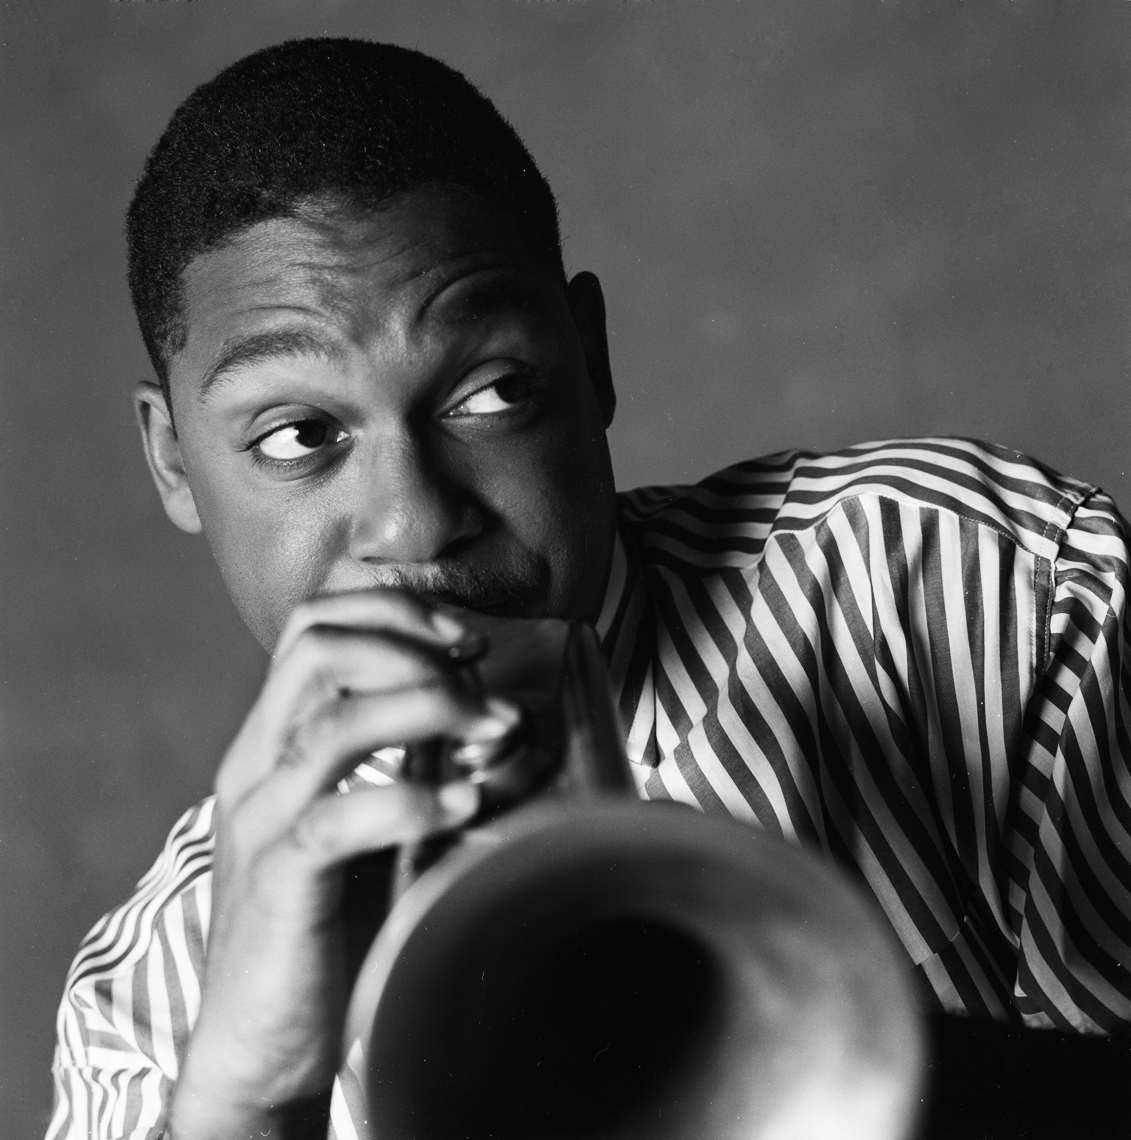 WINTON_MARSALIS_002_being_retouched.jpg